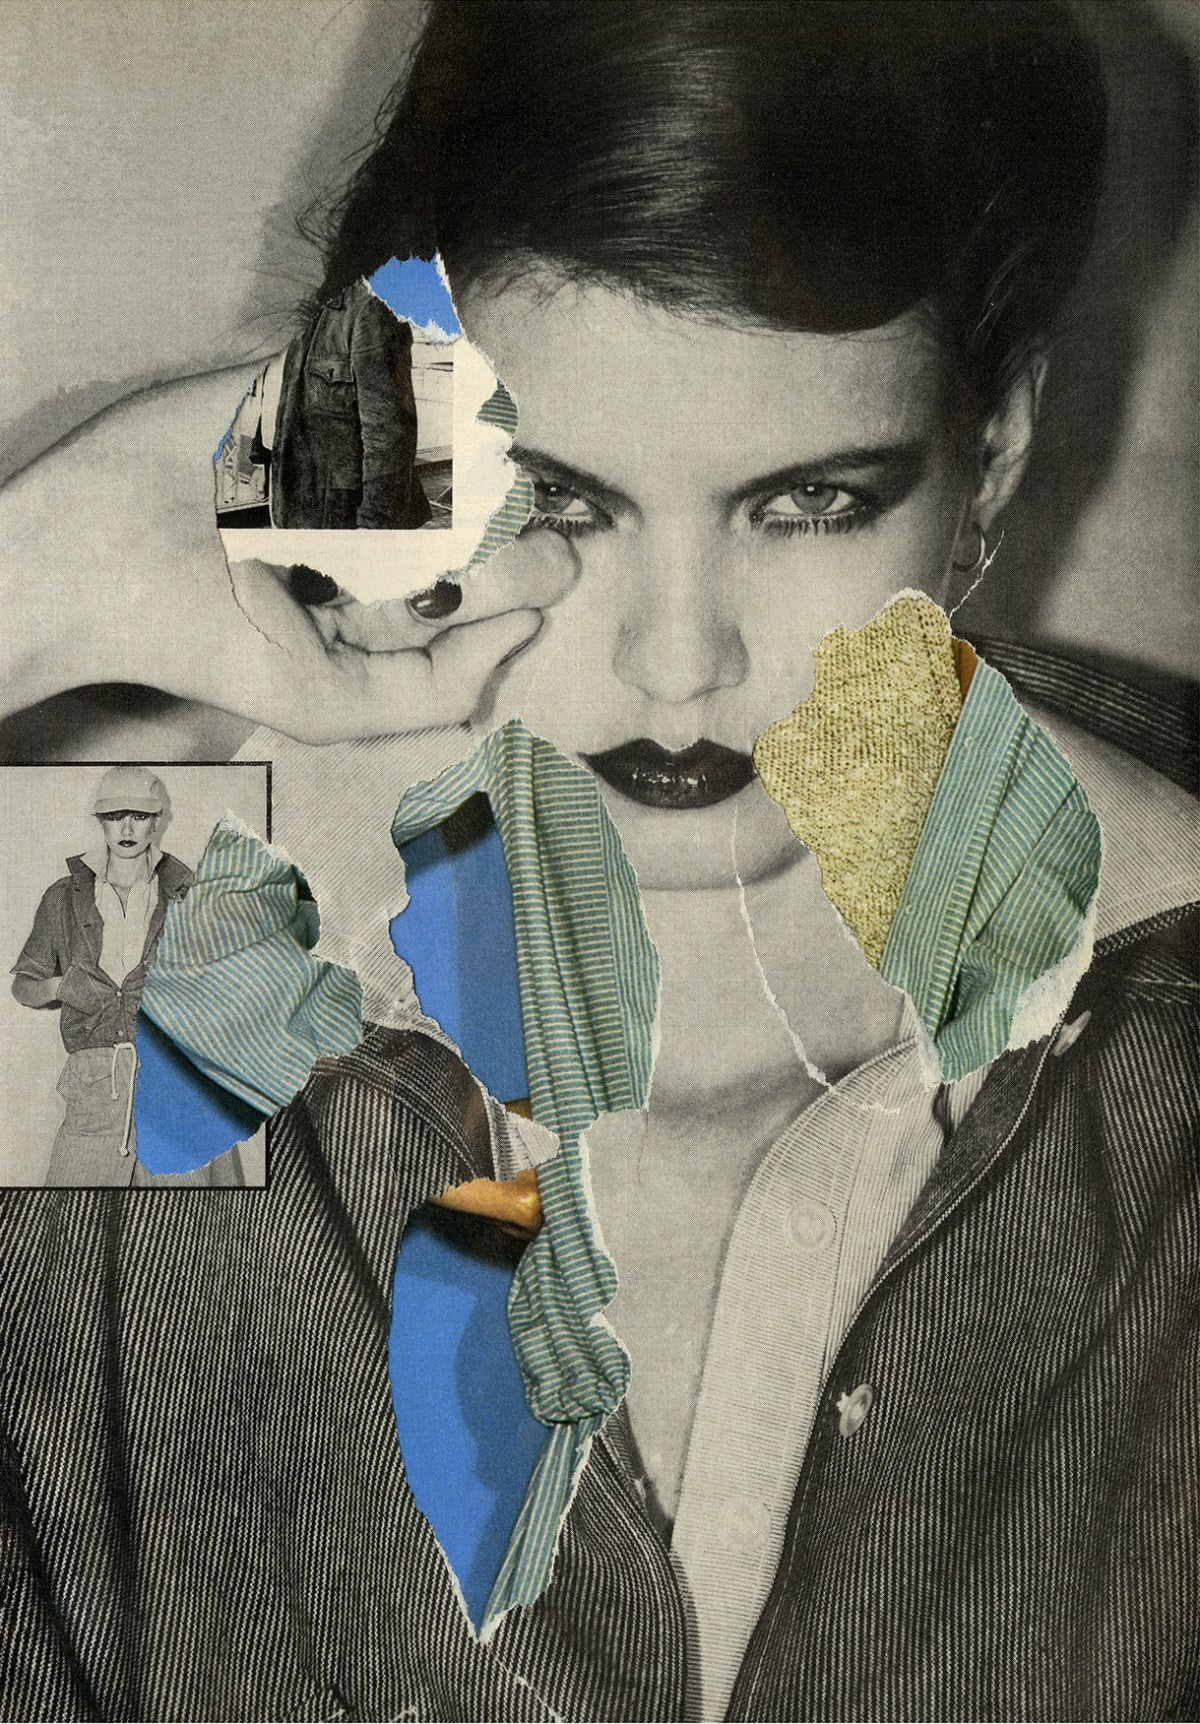 Ehryn Torrell, Secondary Collage [02], 2017